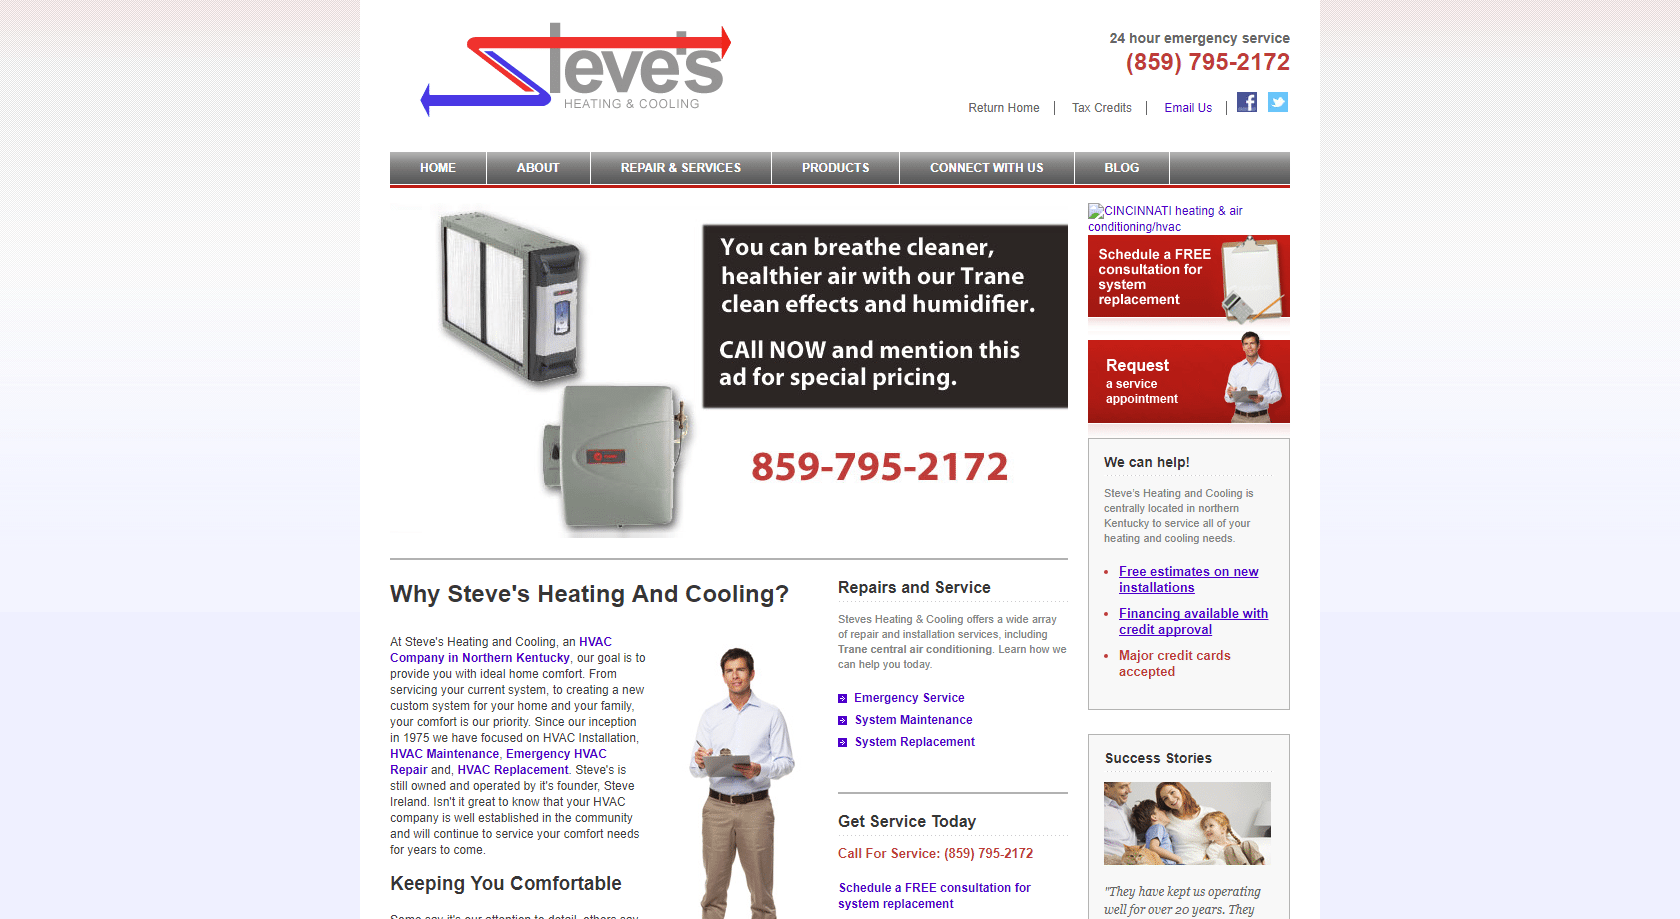 Steve's Heating old website